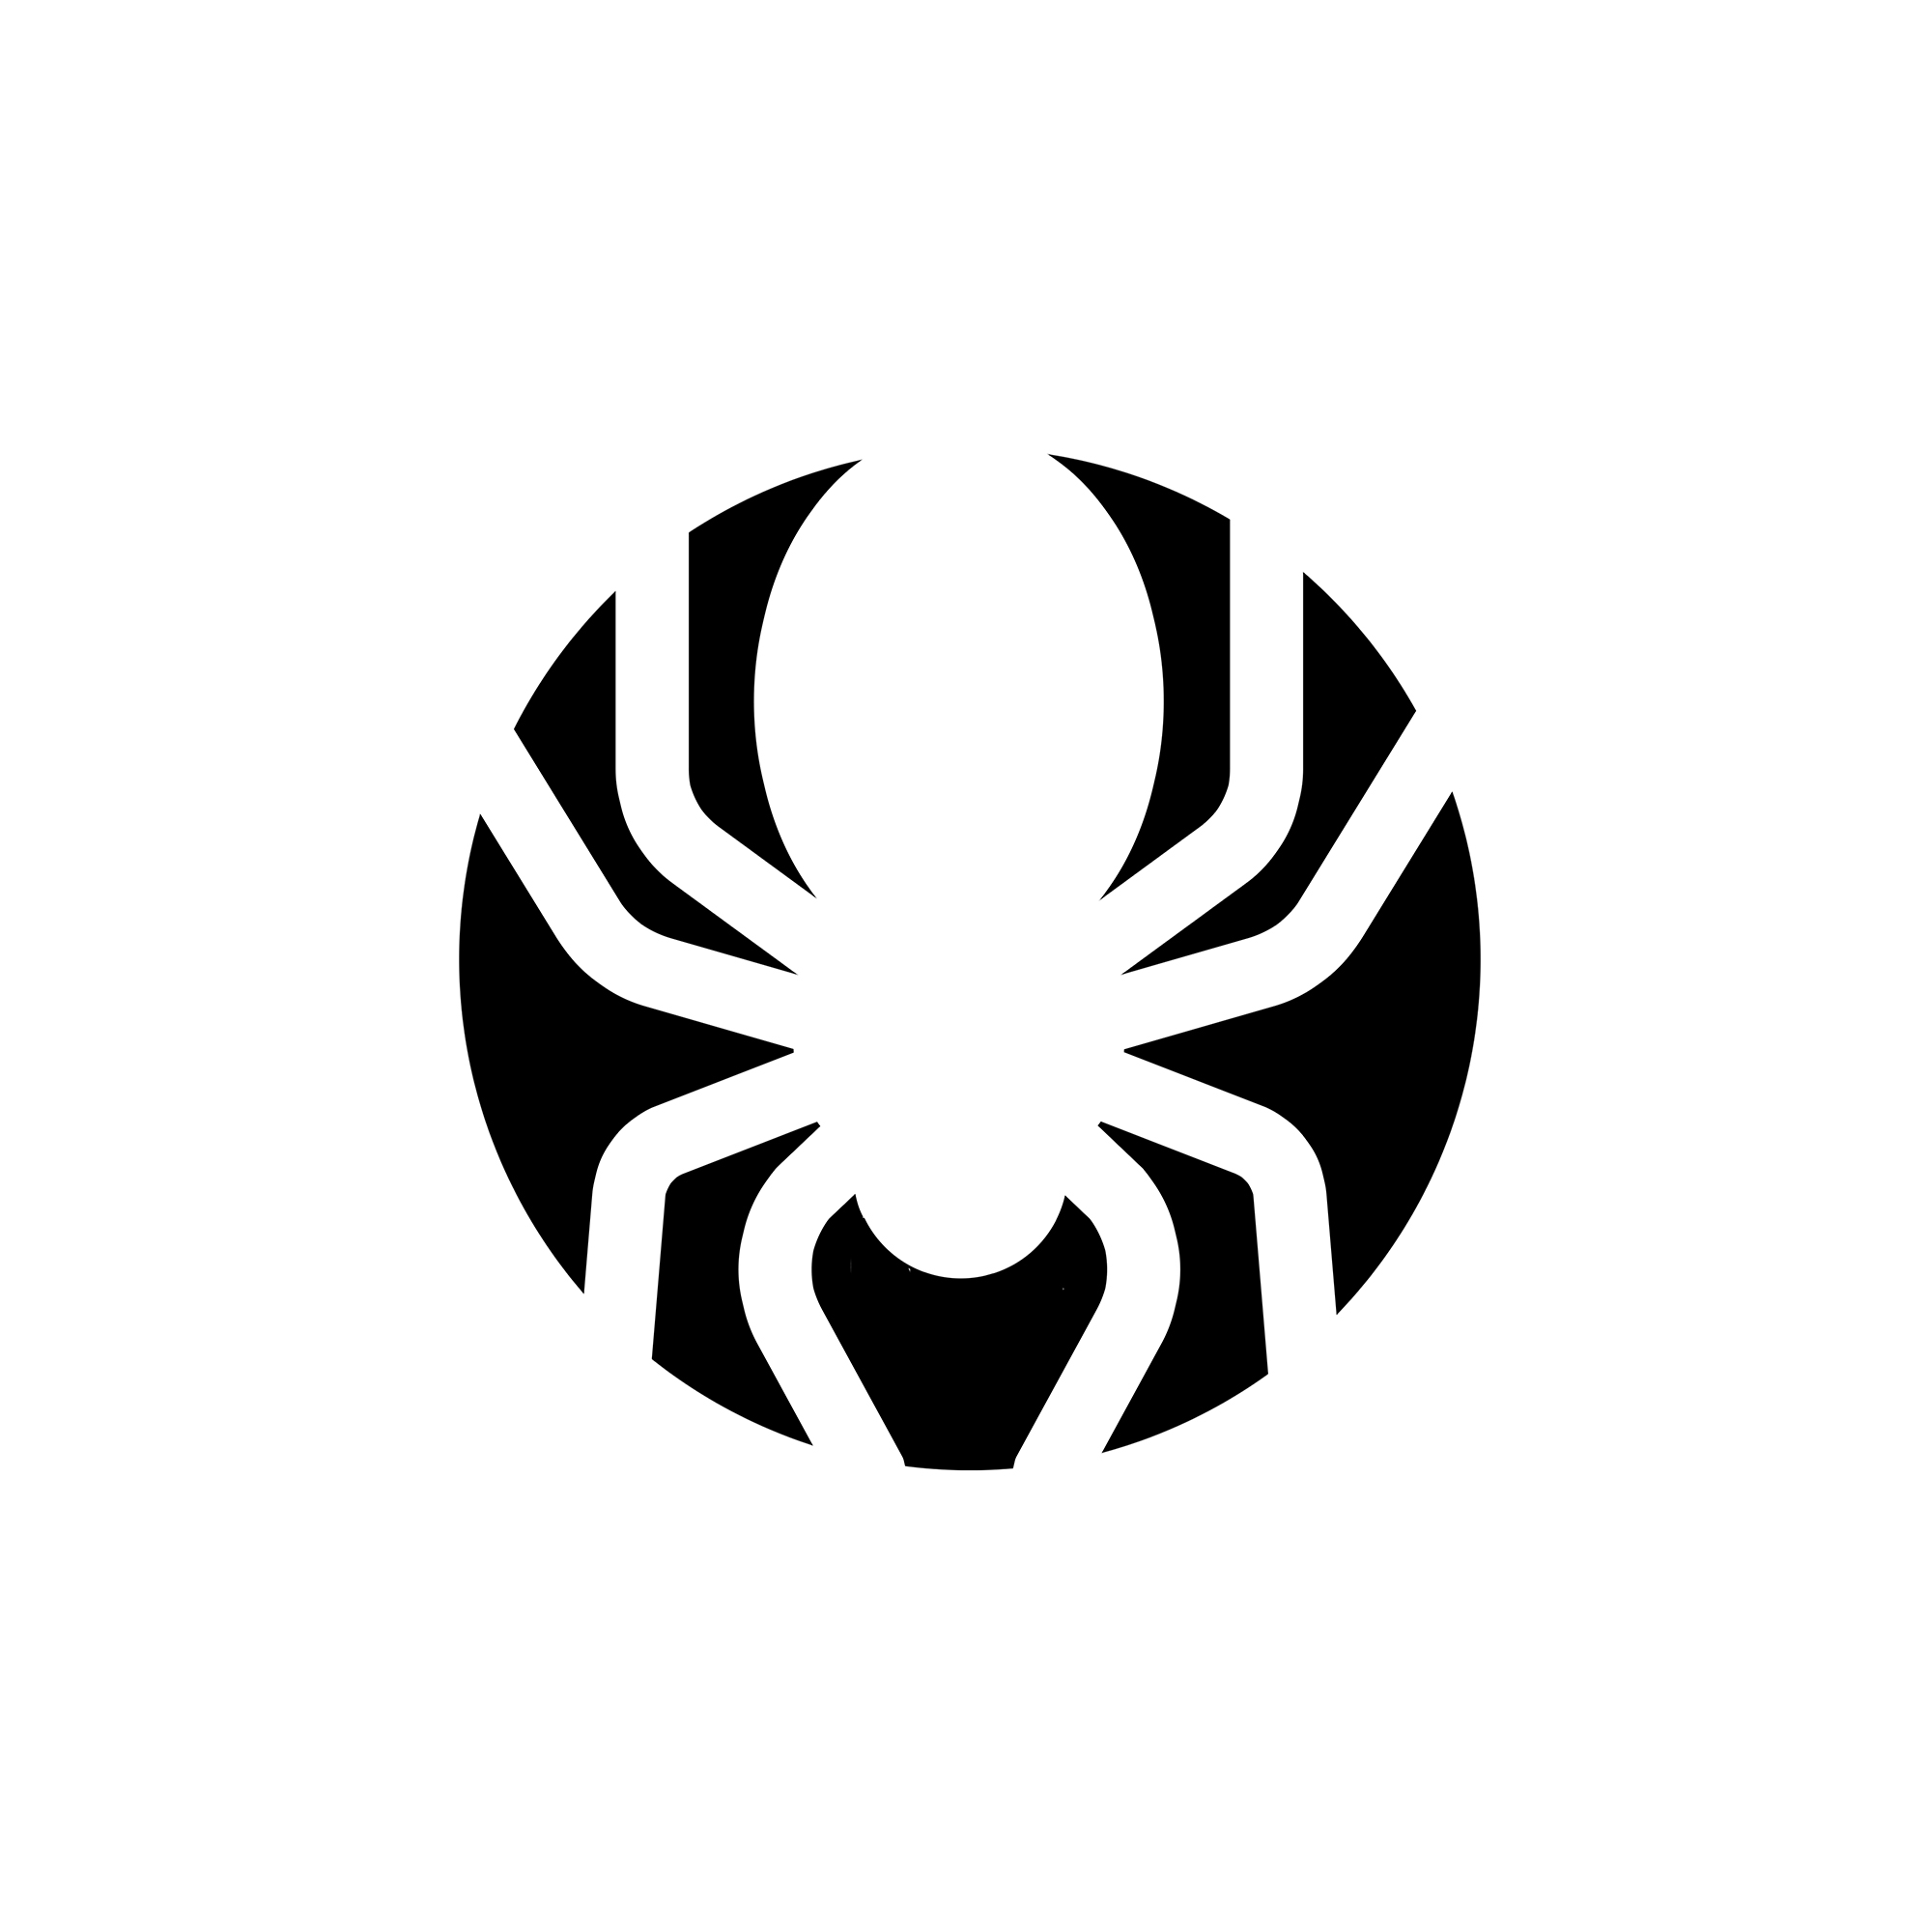 Pumpkin carving stencil: Spider template print-out